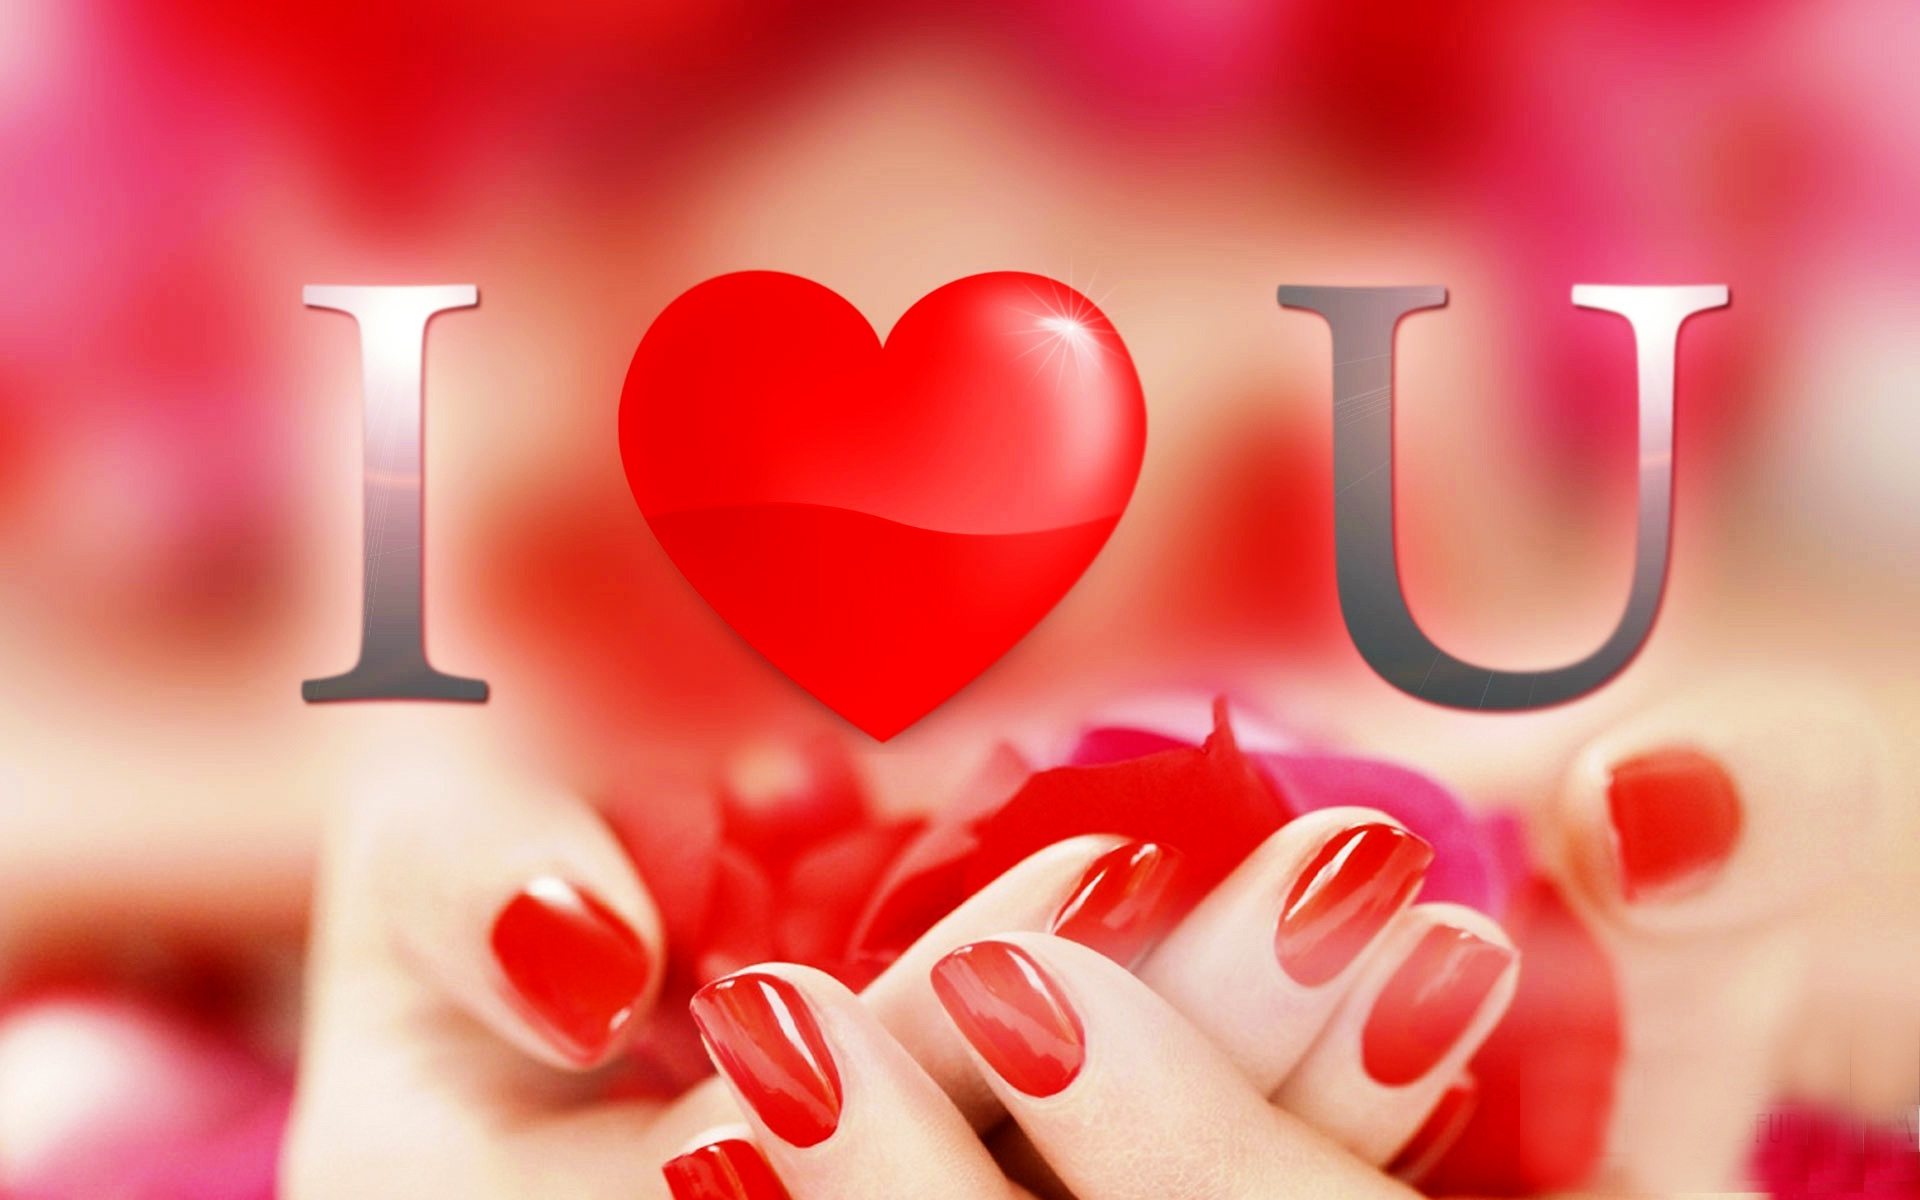 I Love Wallpaper 42 Wallpapers – Adorable Wallpapers